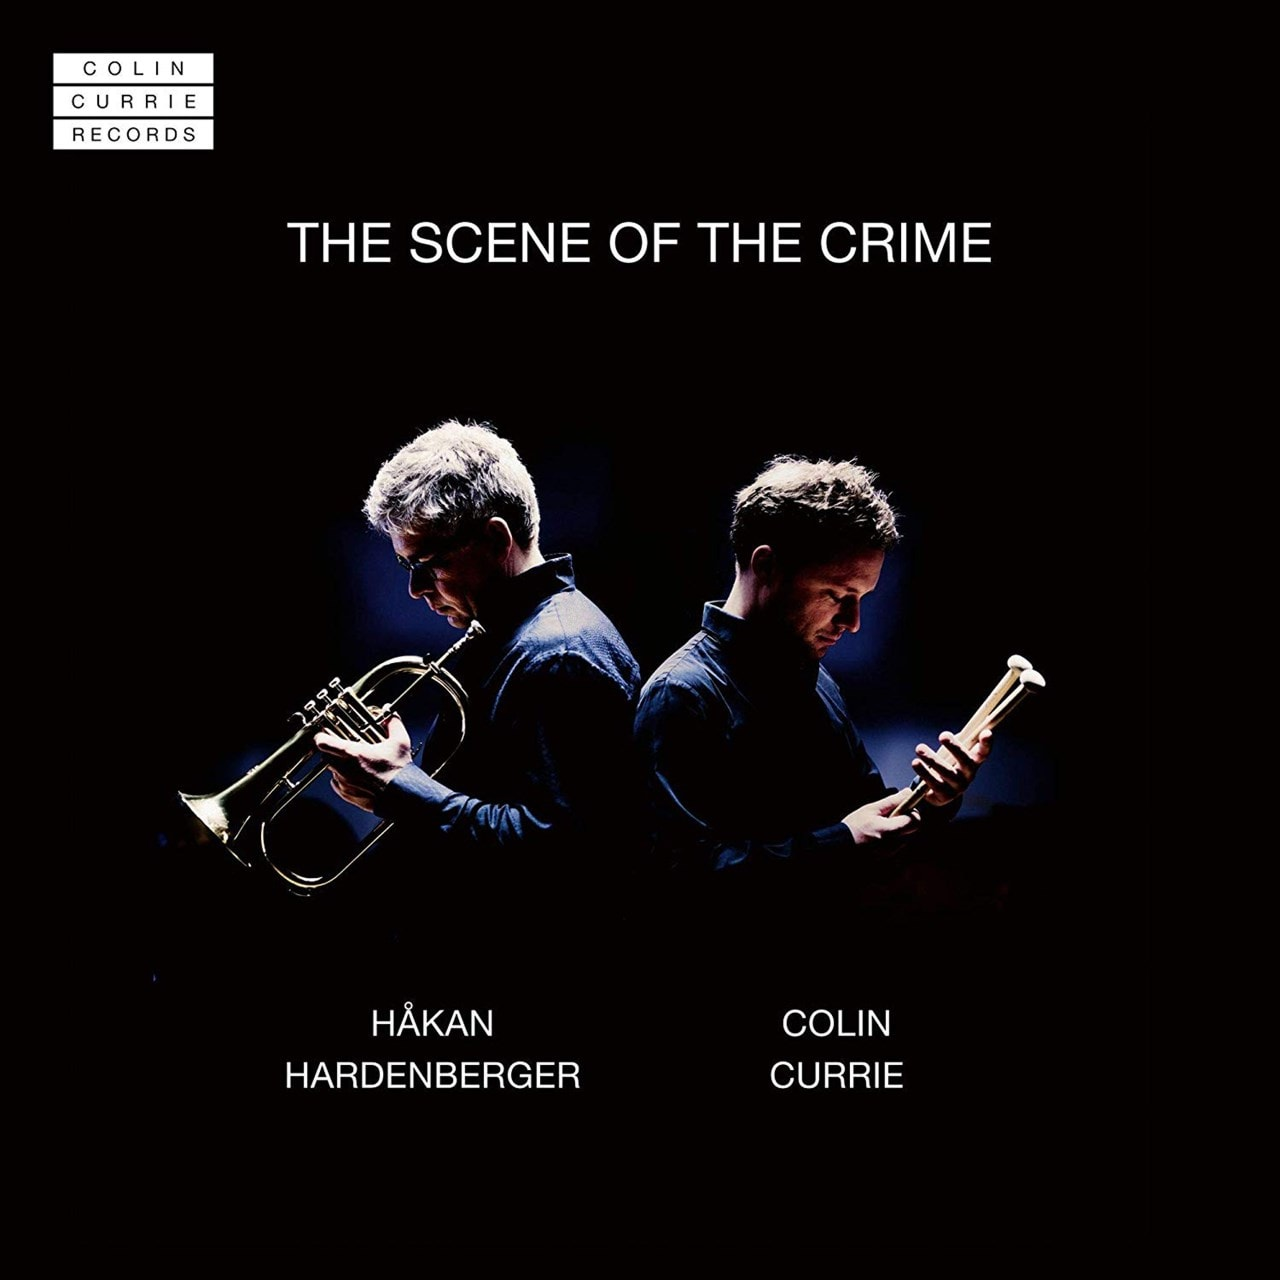 Hakan Hardenberger/Colin Currie: The Scene of the Crime - 1